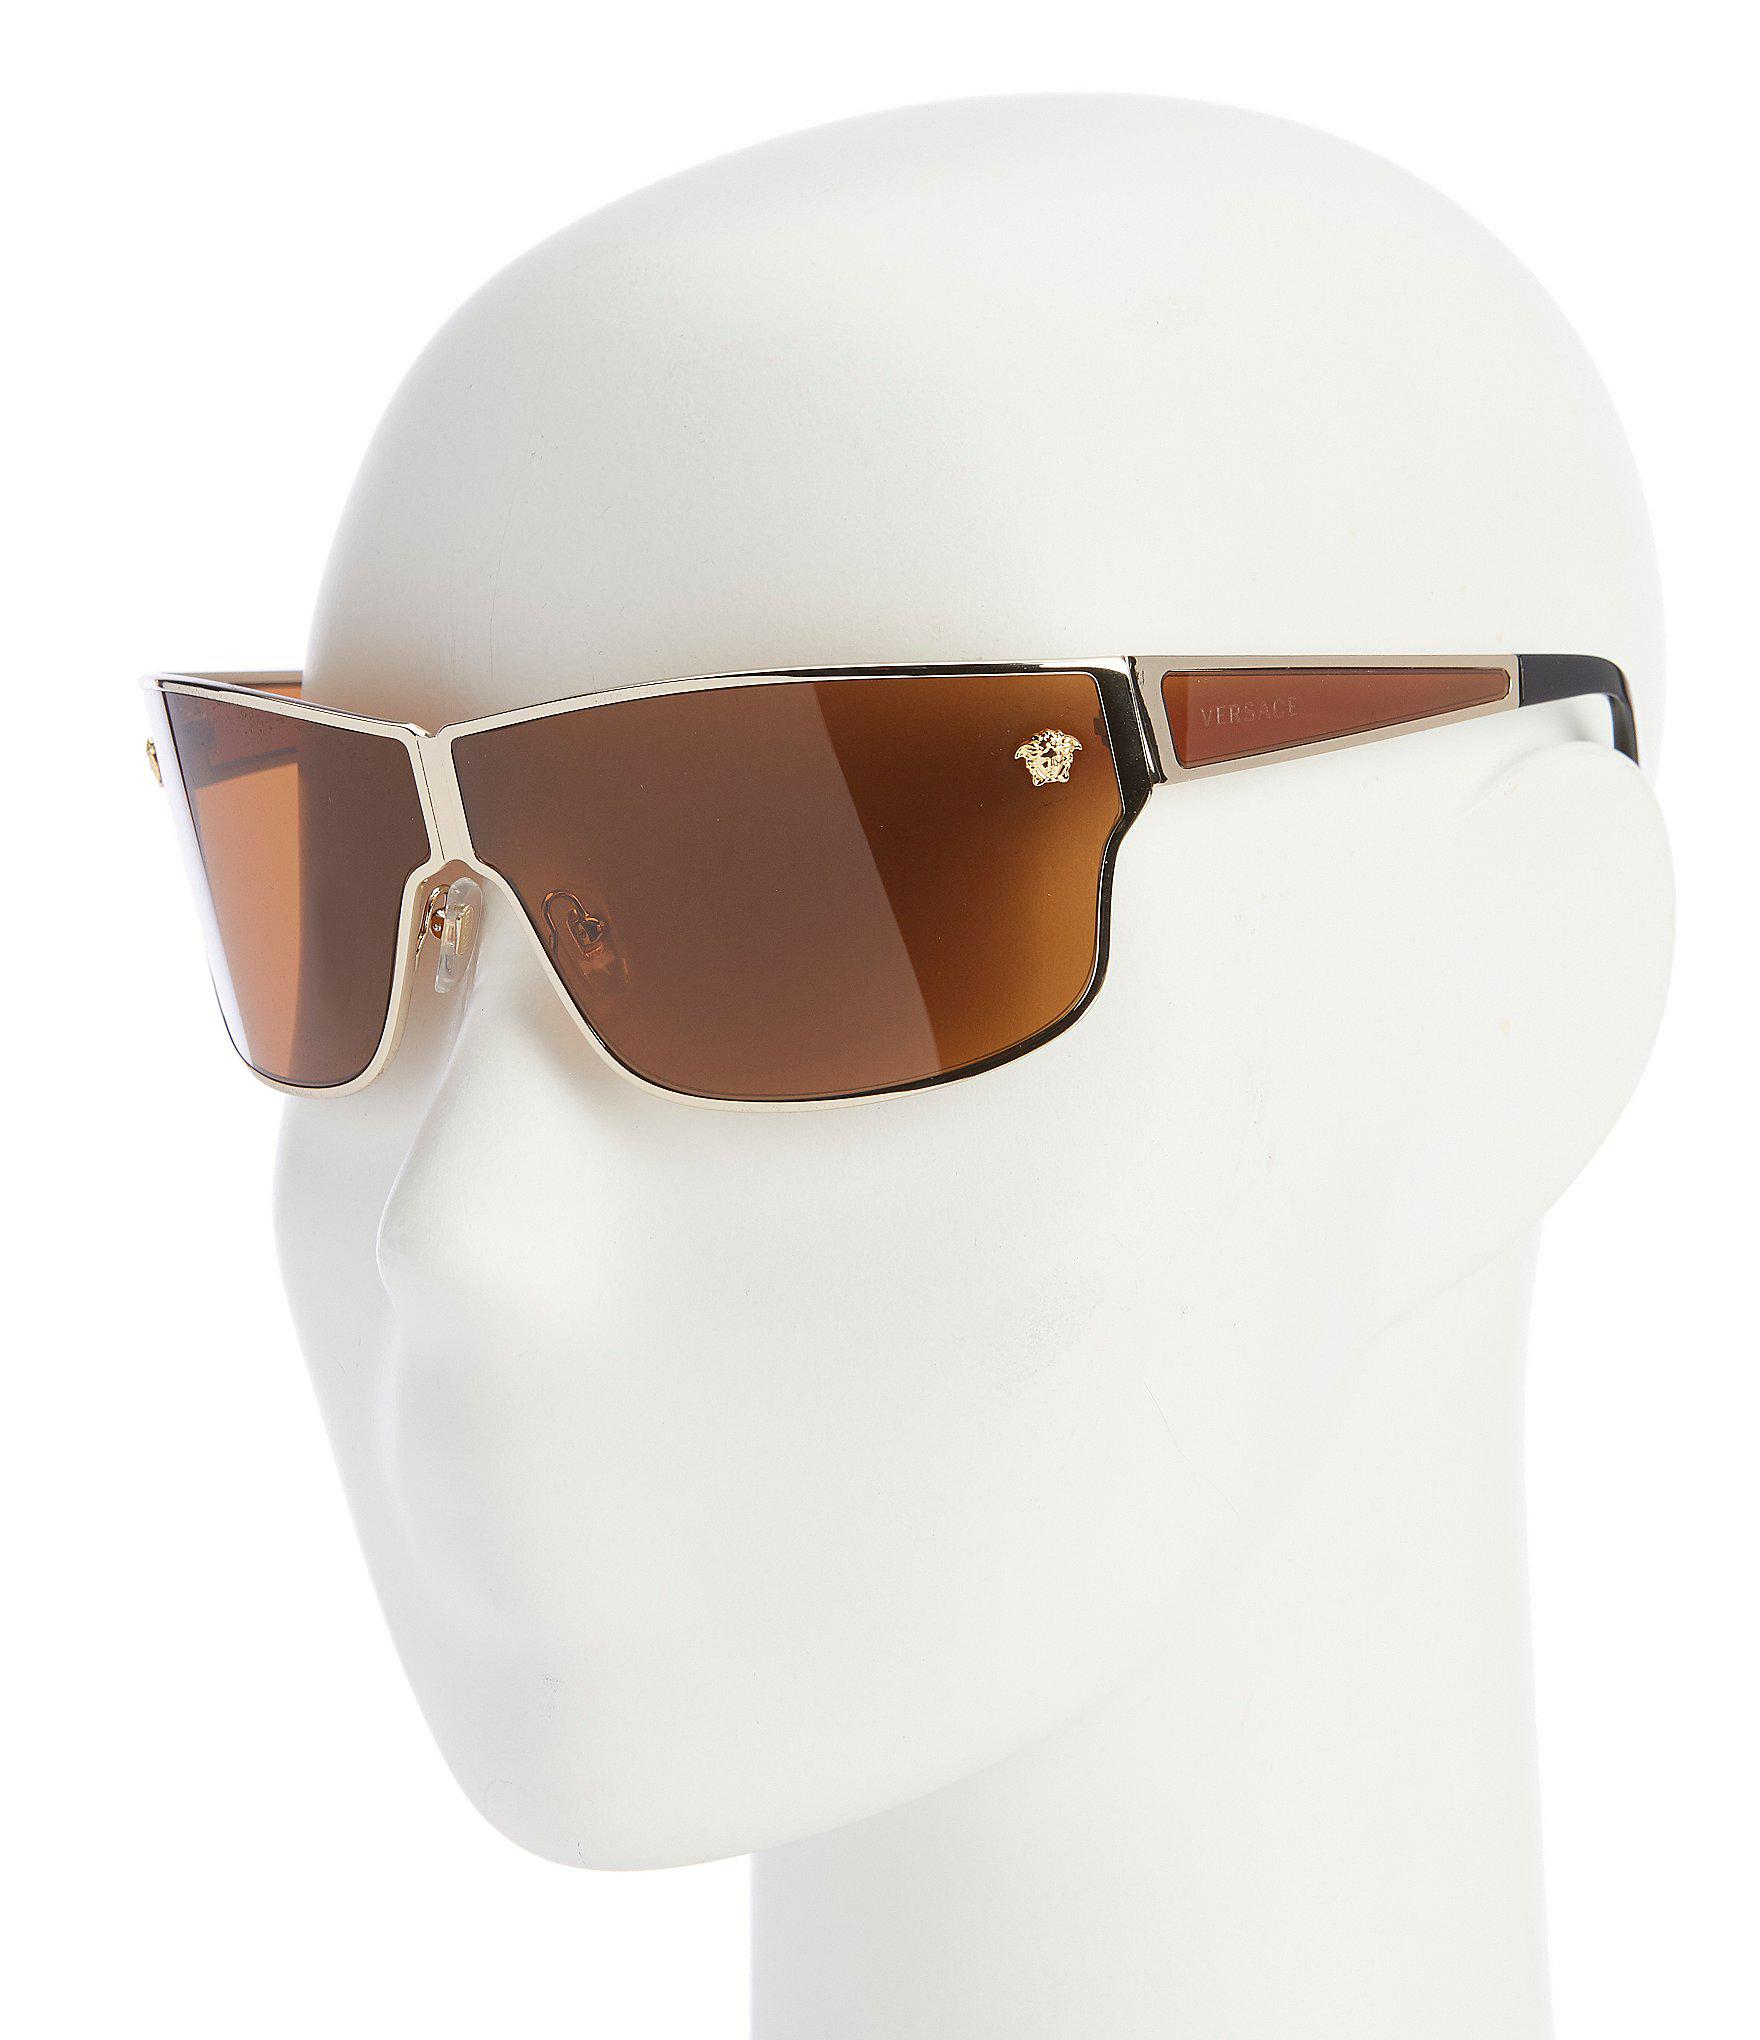 55677fc98d5 Lyst - Versace Men s Medusa Aspis Sunglasses in Metallic for Men